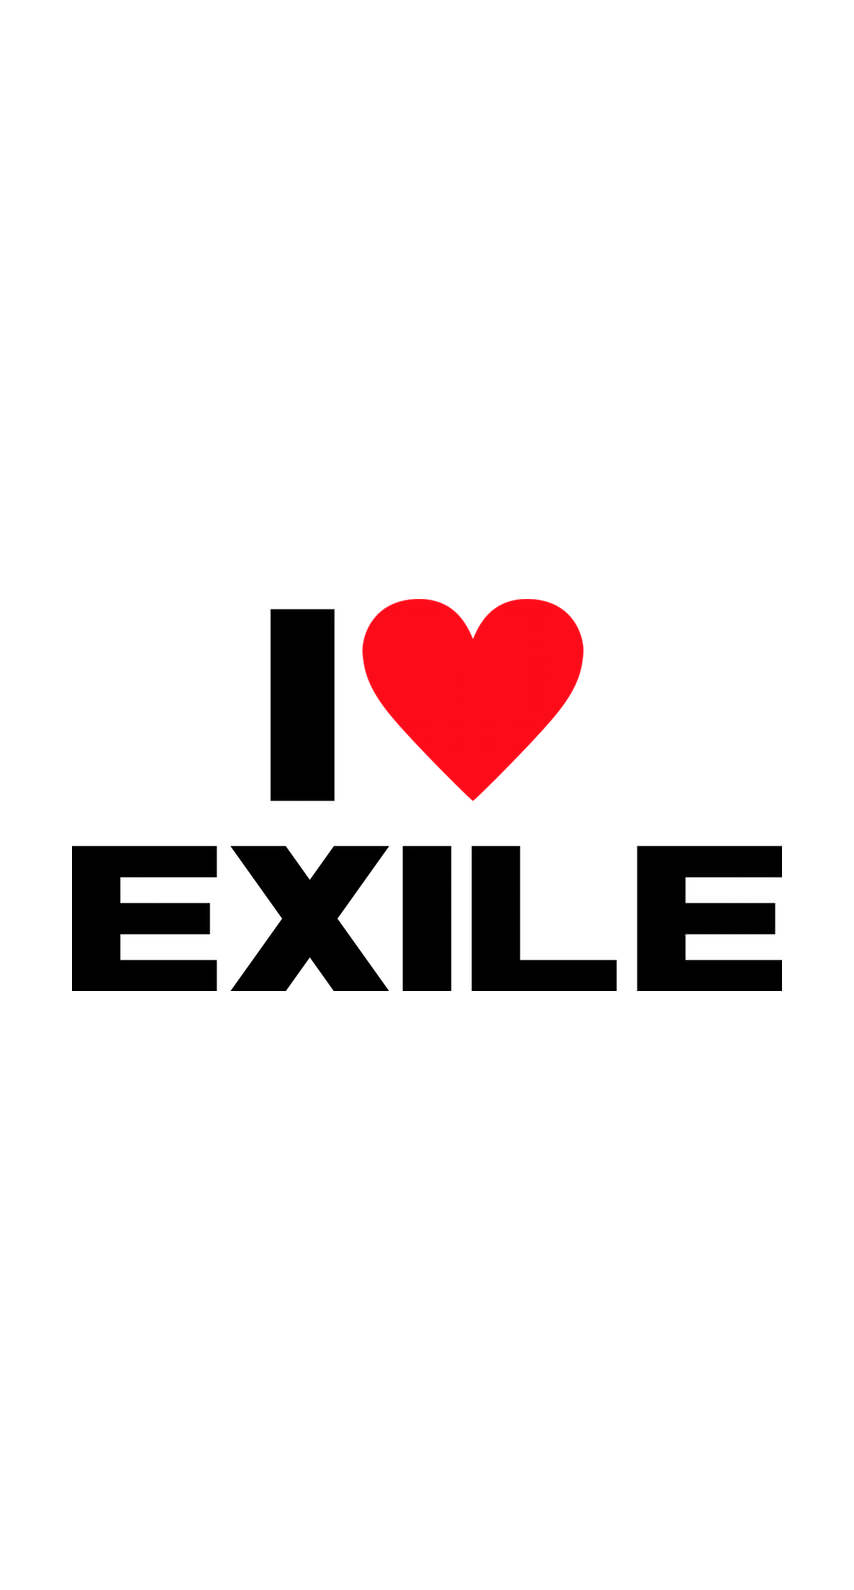 exile1